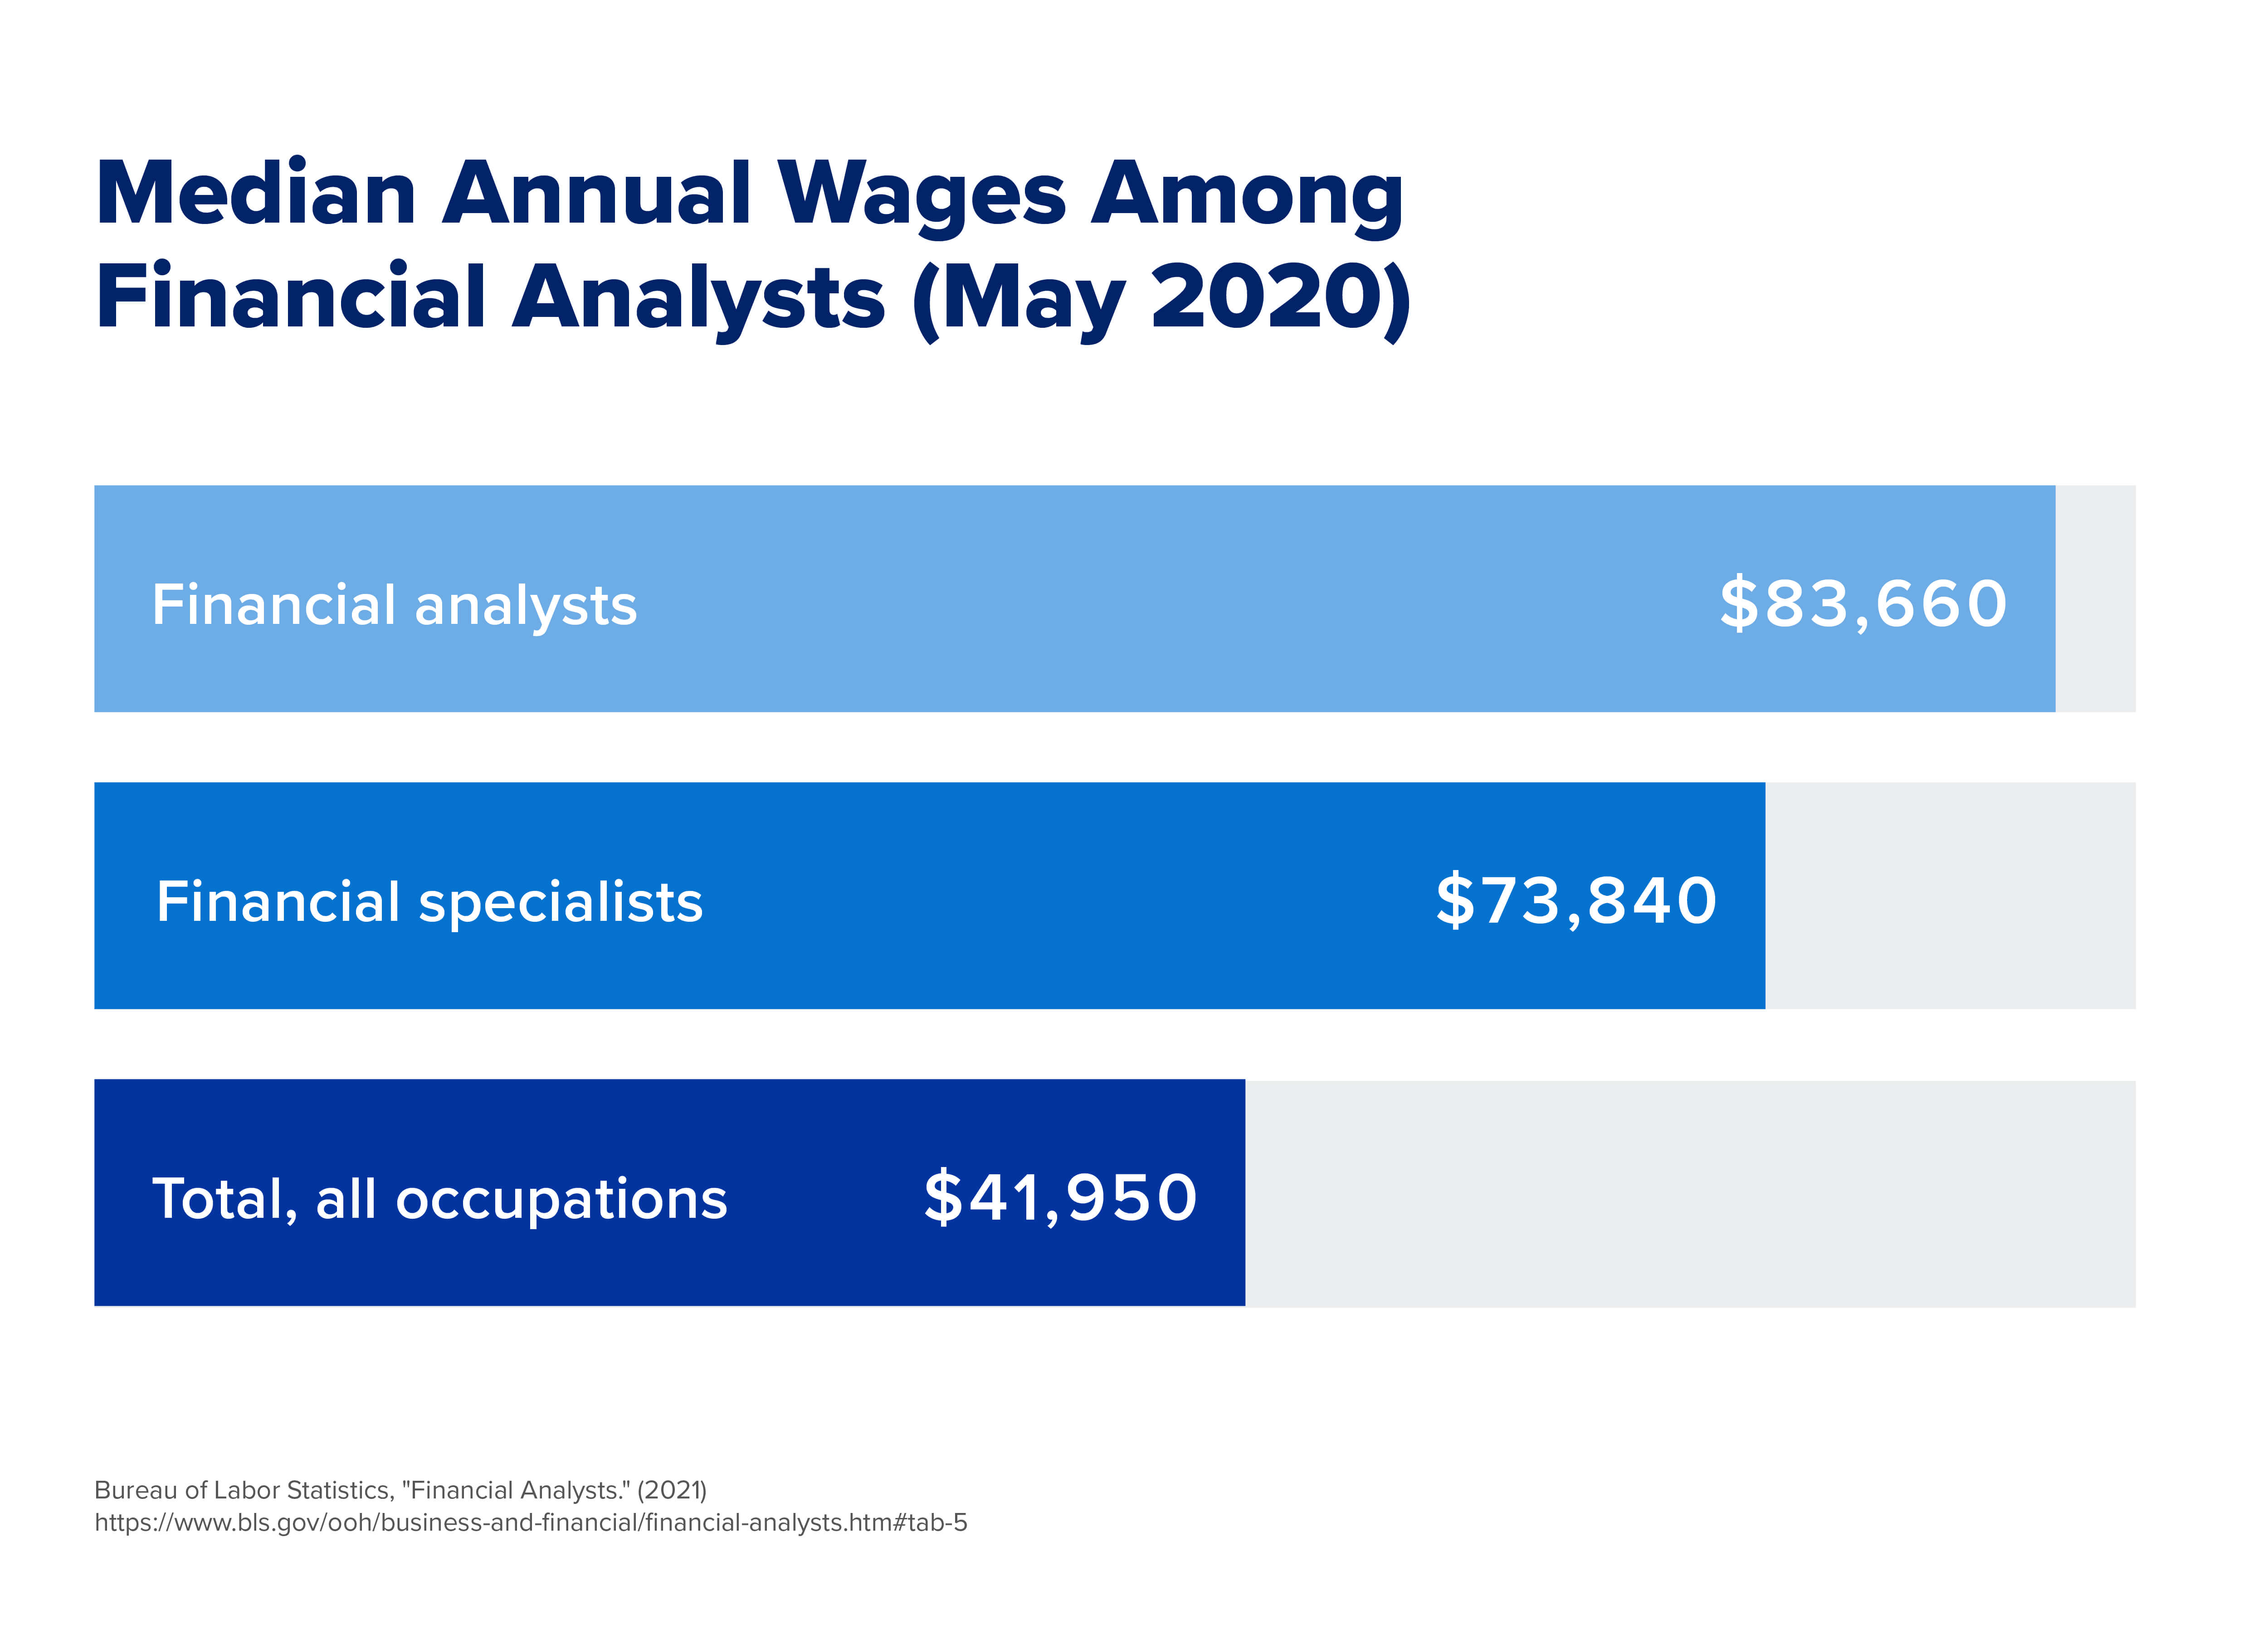 A chart comparing the median annual wages among financial analysts.